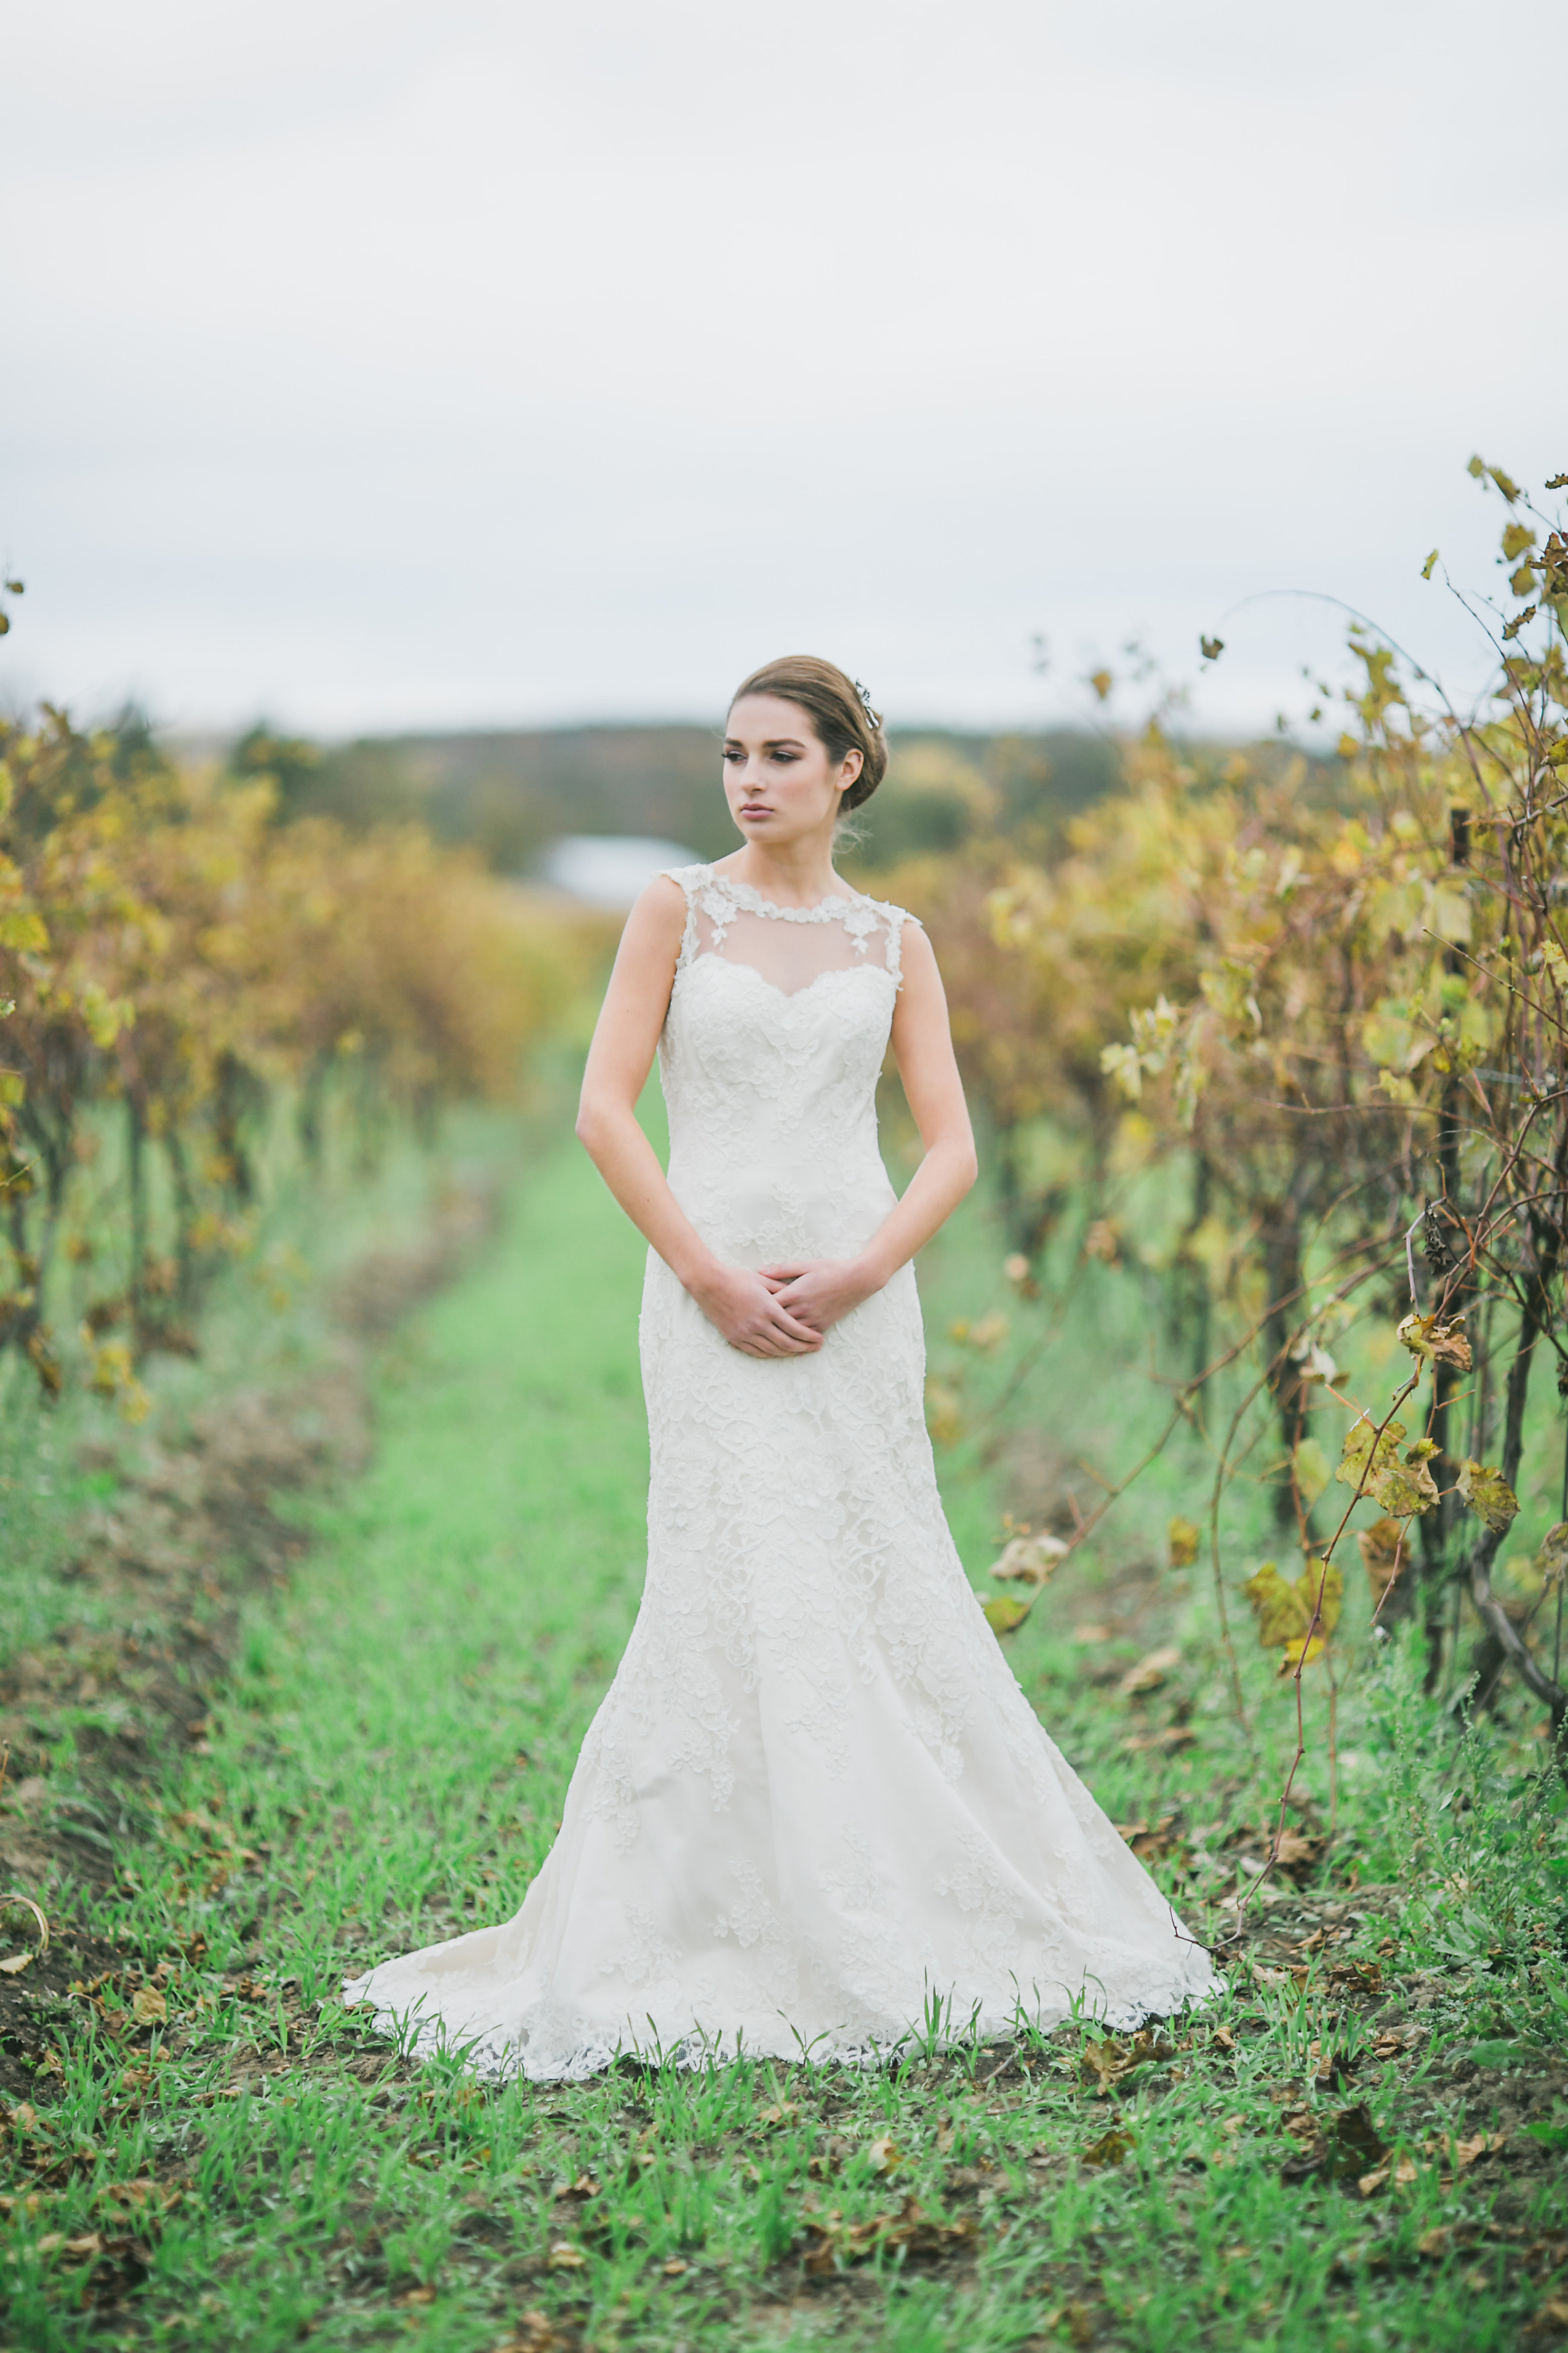 Phoebe Lo Events Toronto Wedding - Willow Springs Winery Wedluxe Creative 012.jpg